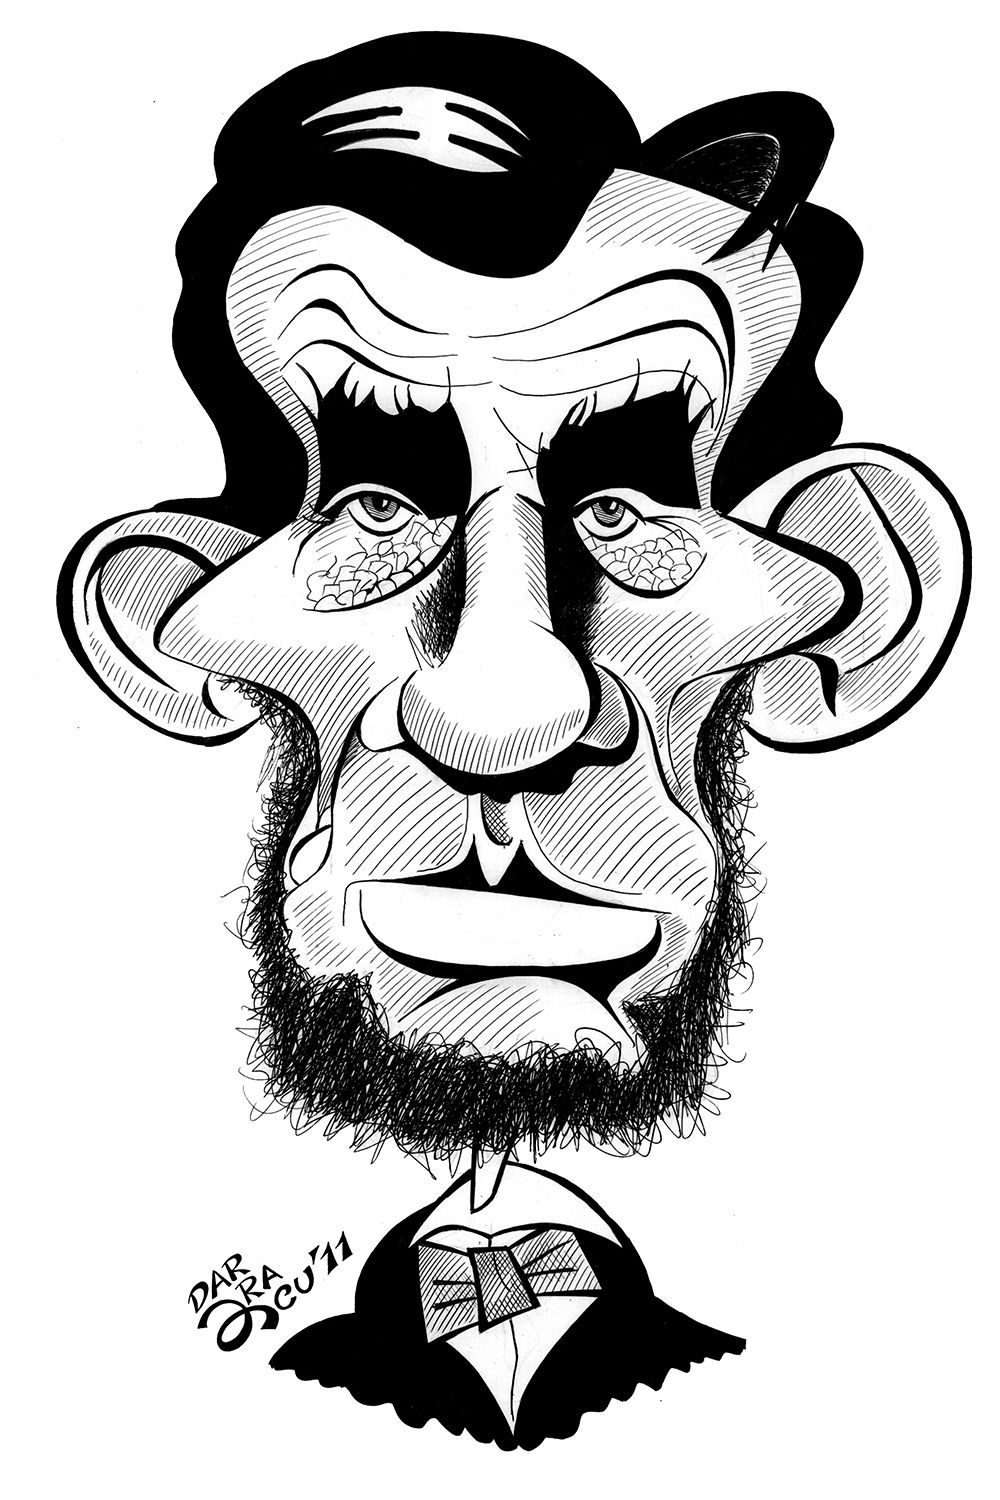 1000x1500 caricature of lincoln abraham lincoln caricature, funny